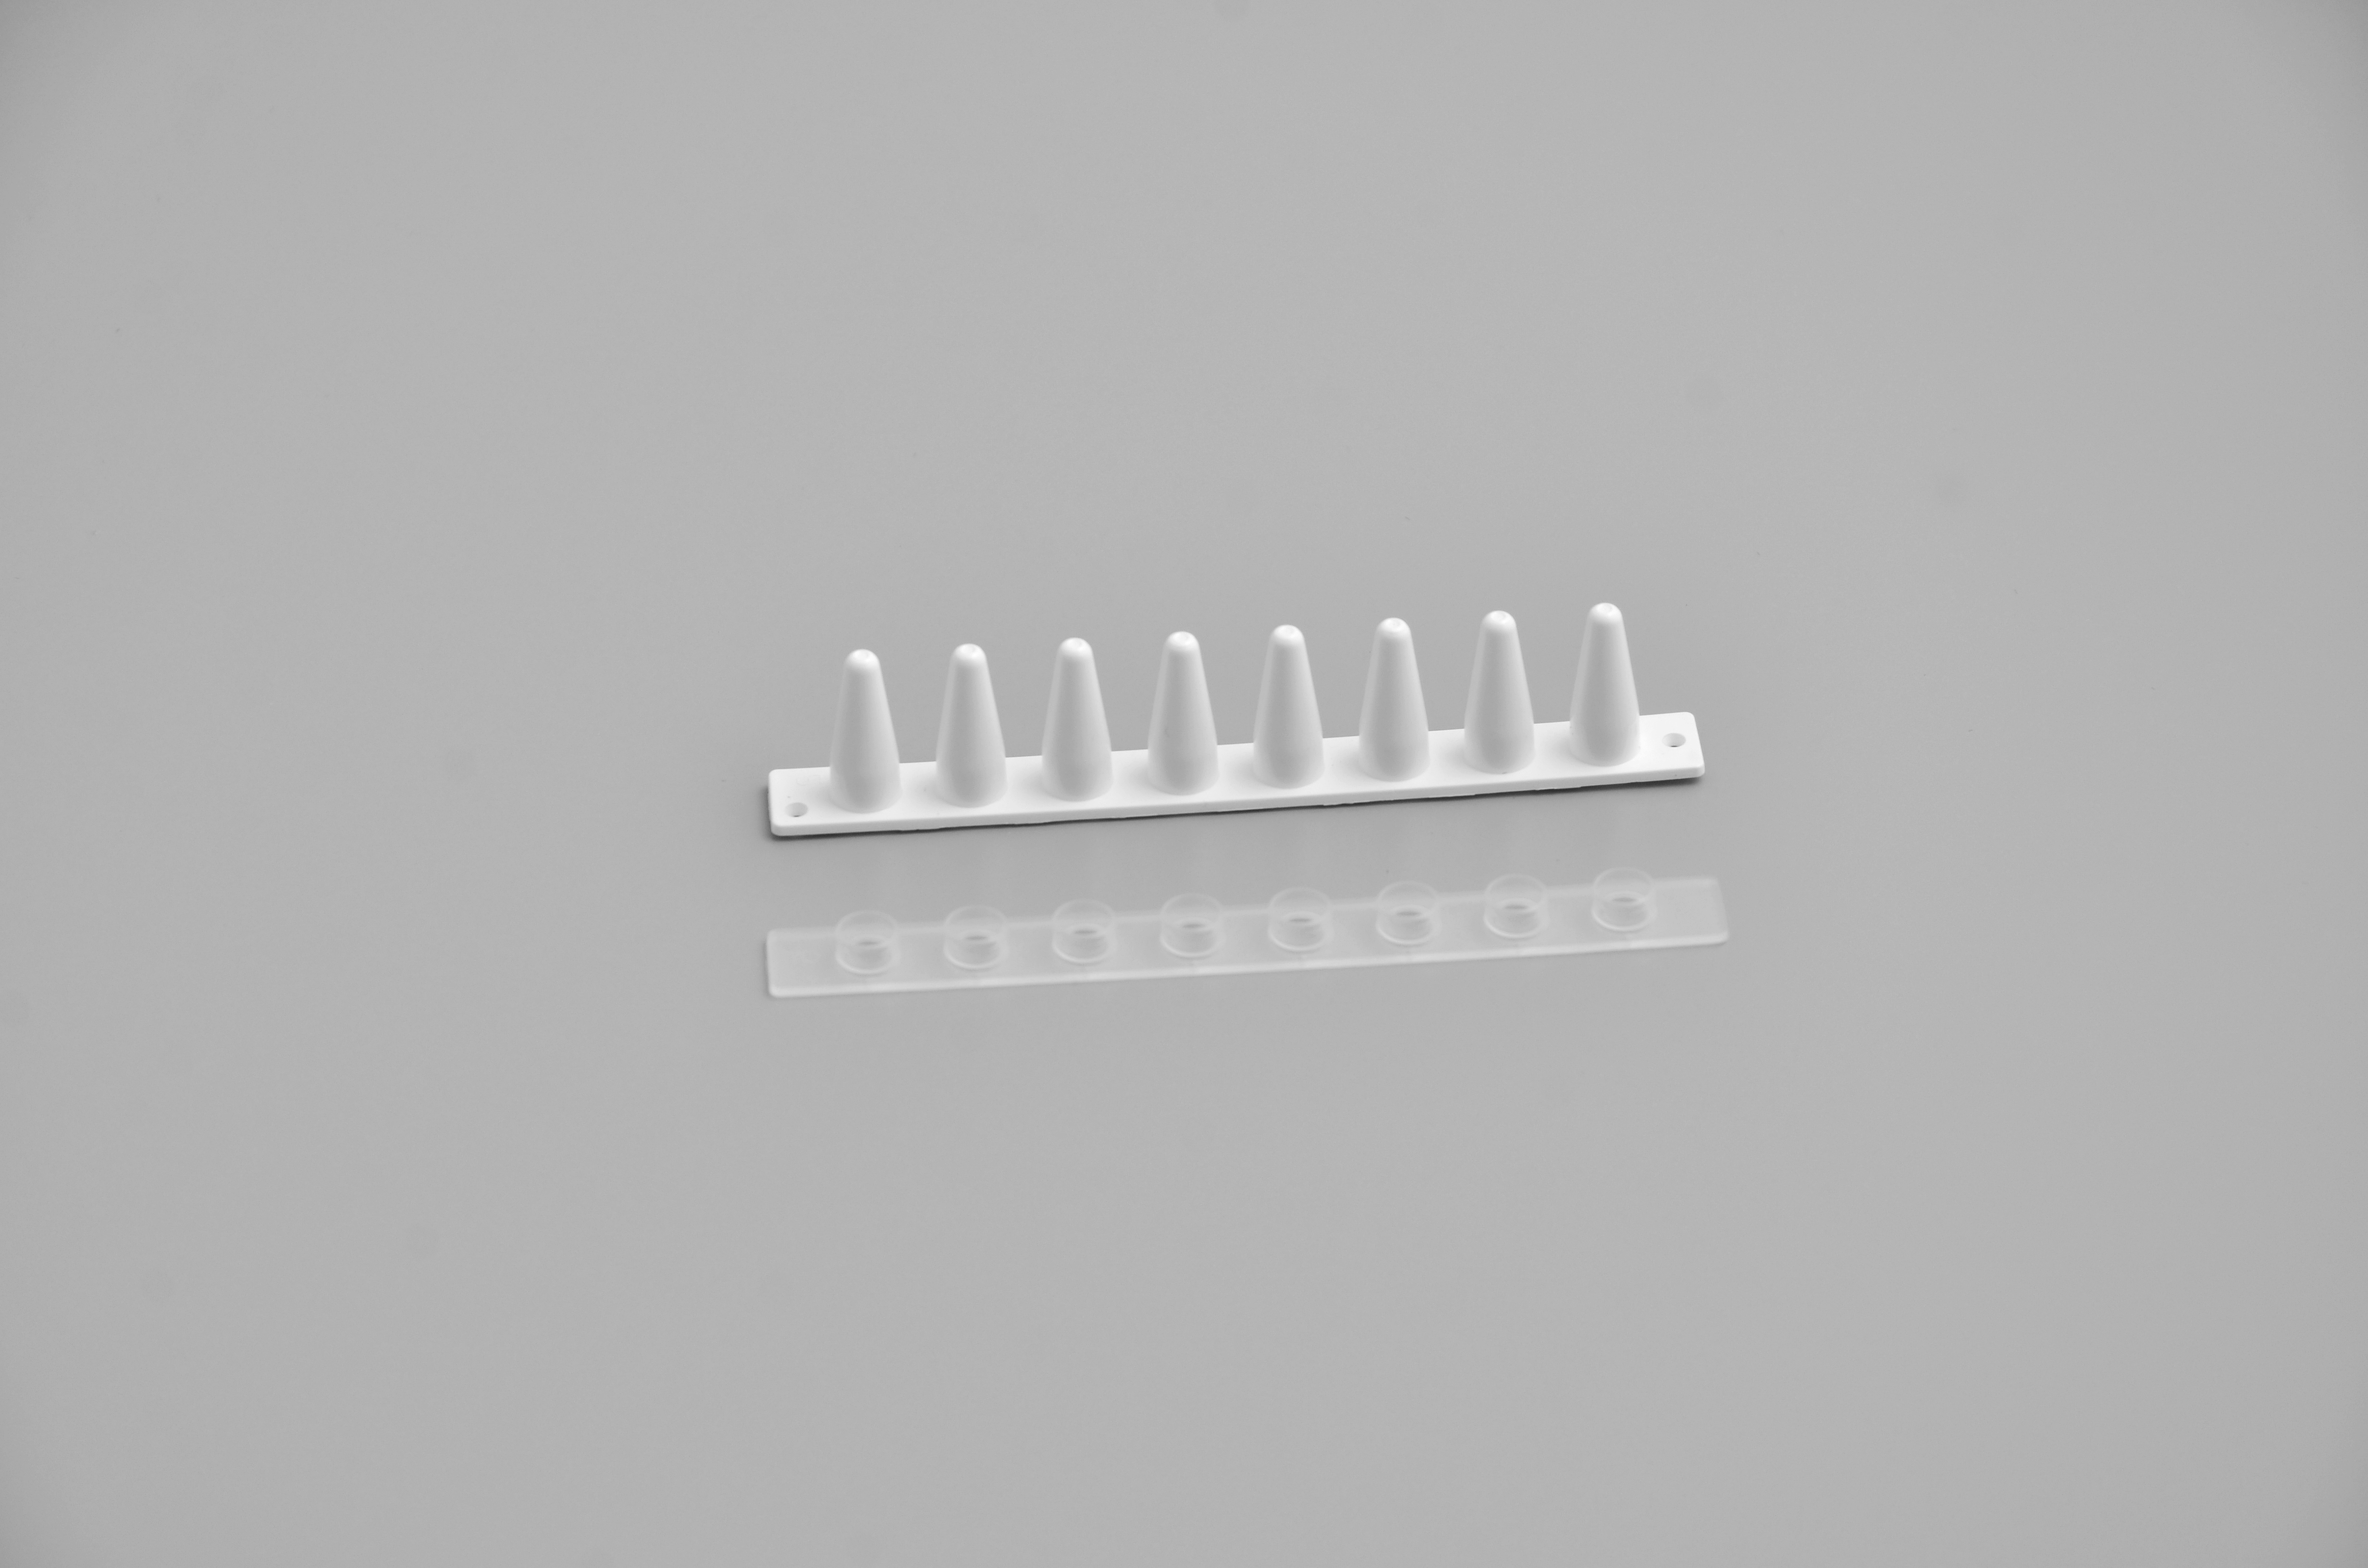 0.1ml white Optical 8-Tube Strip with Optically Clear Flat Caps, ideal for real-time PCR